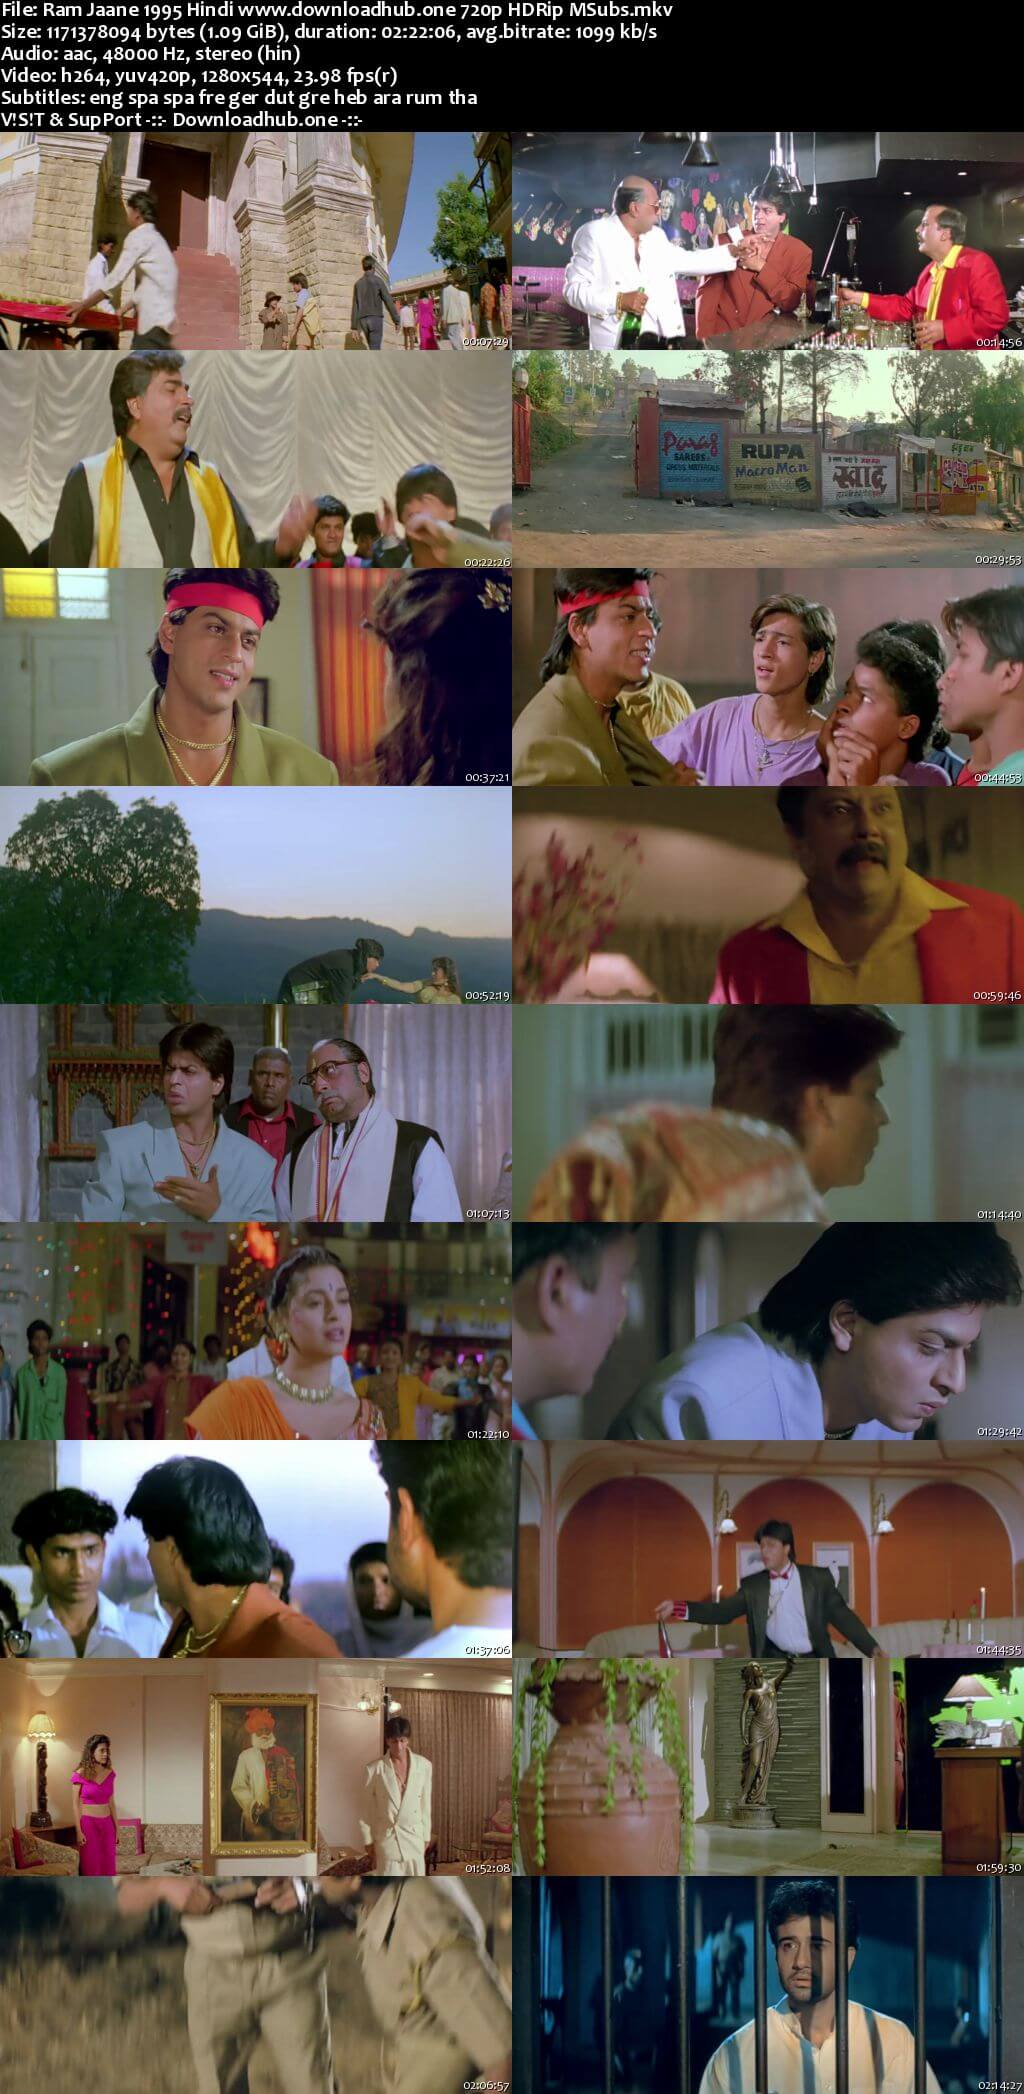 Ram Jaane 1995 Hindi 720p HDRip MSubs